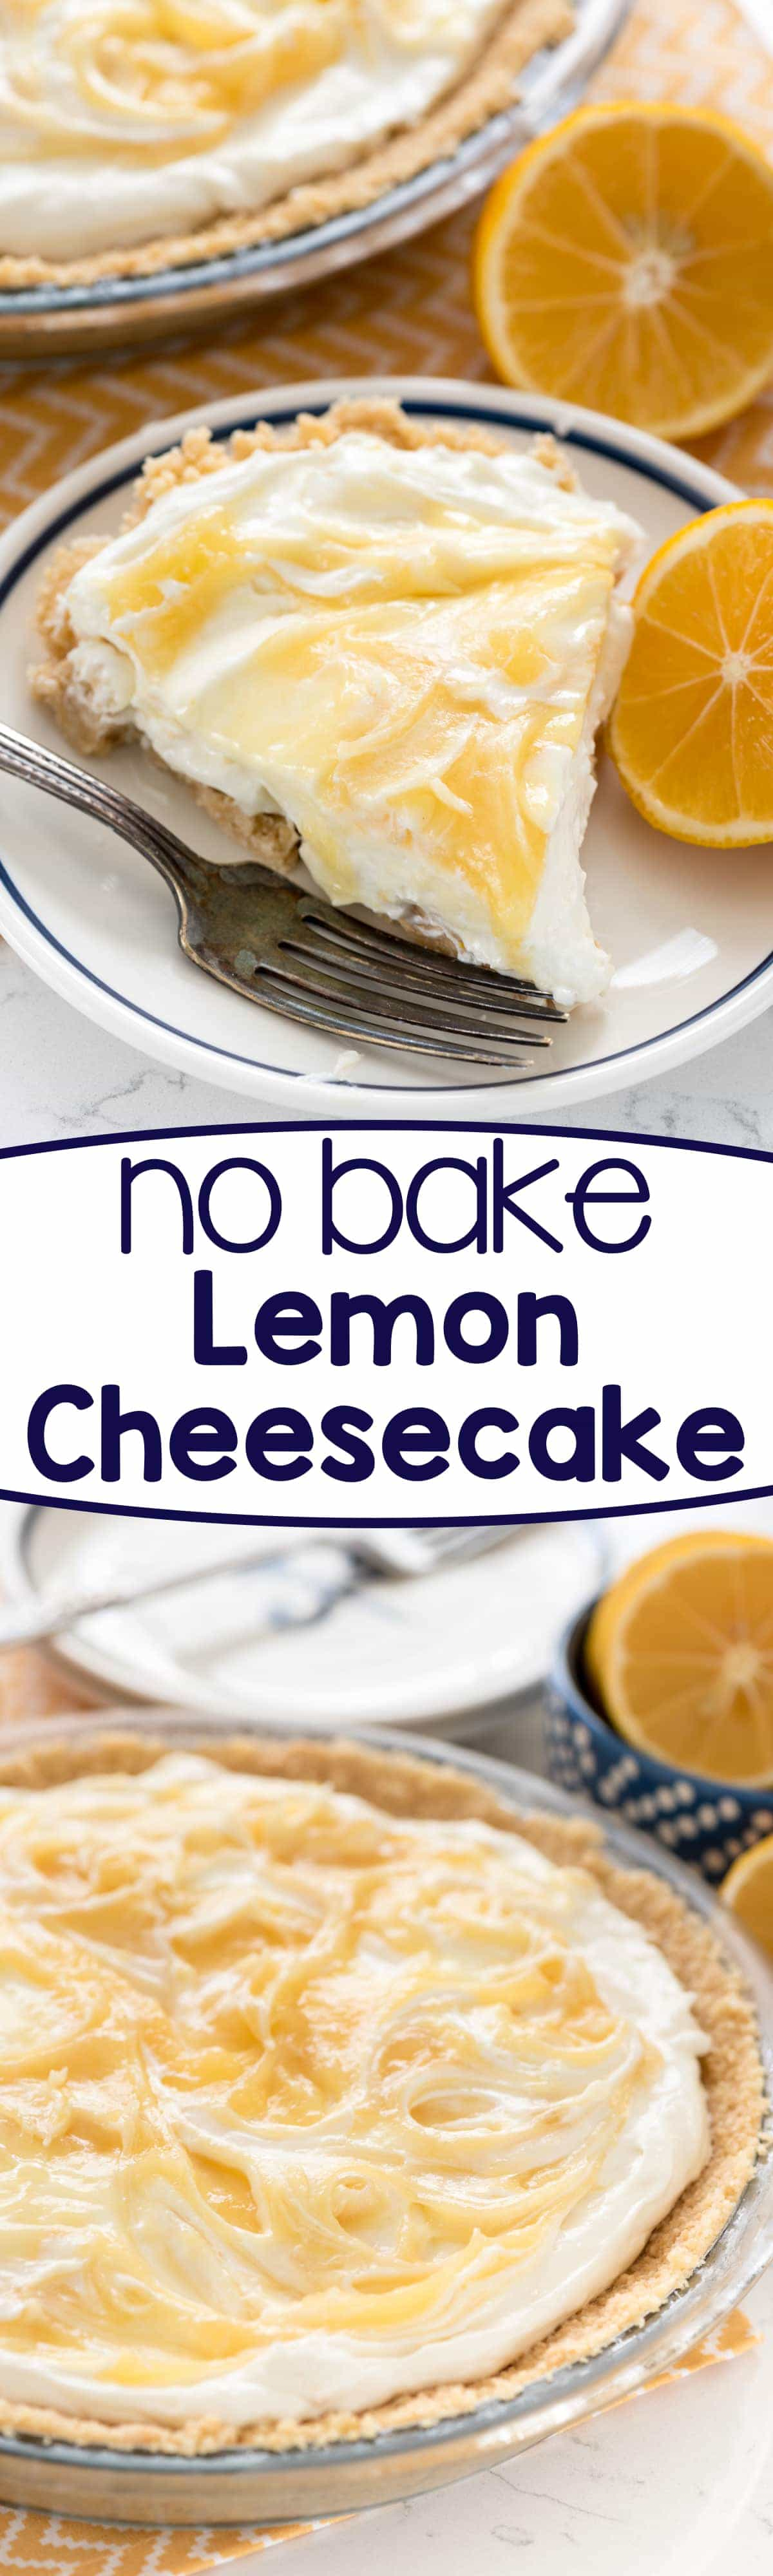 No Bake Lemon Cheesecake - this easy no bake cheesecake is full of lemon flavor! It's the perfect no bake pie recipe!